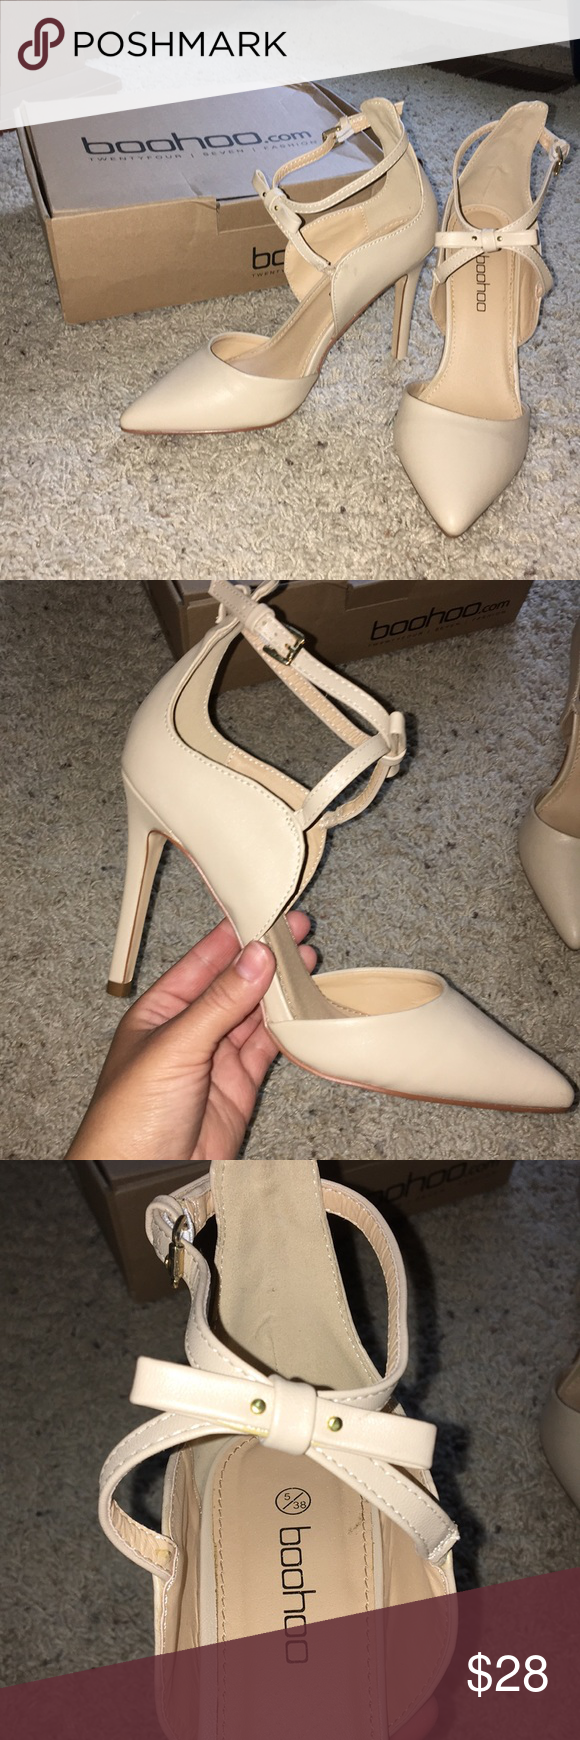 Heels From Boohoo Heels Shoes Women Heels Women Shoes